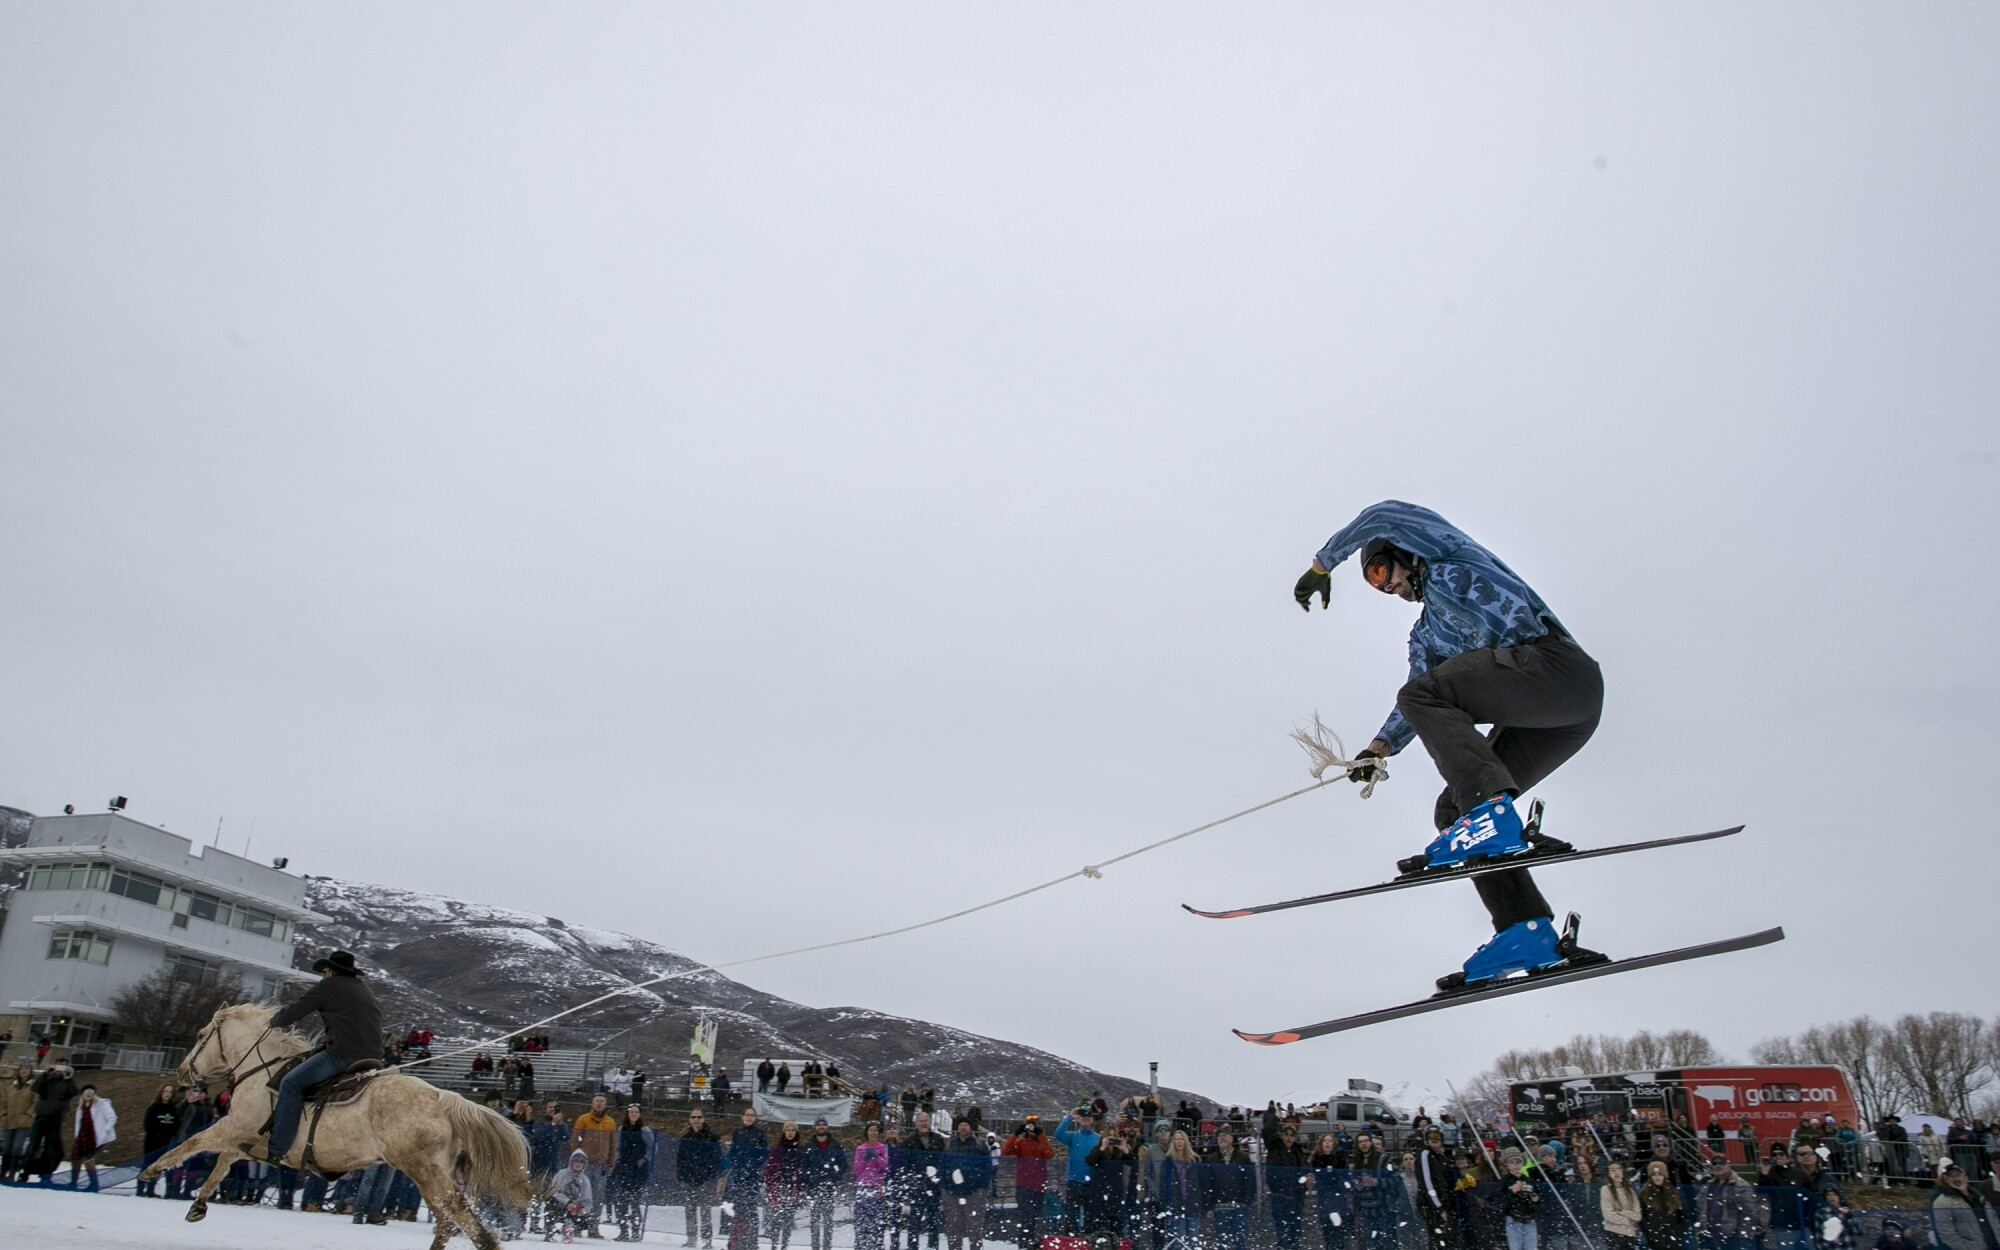 Skijoring features riders pulling skiers through an obstacle course at full speed.